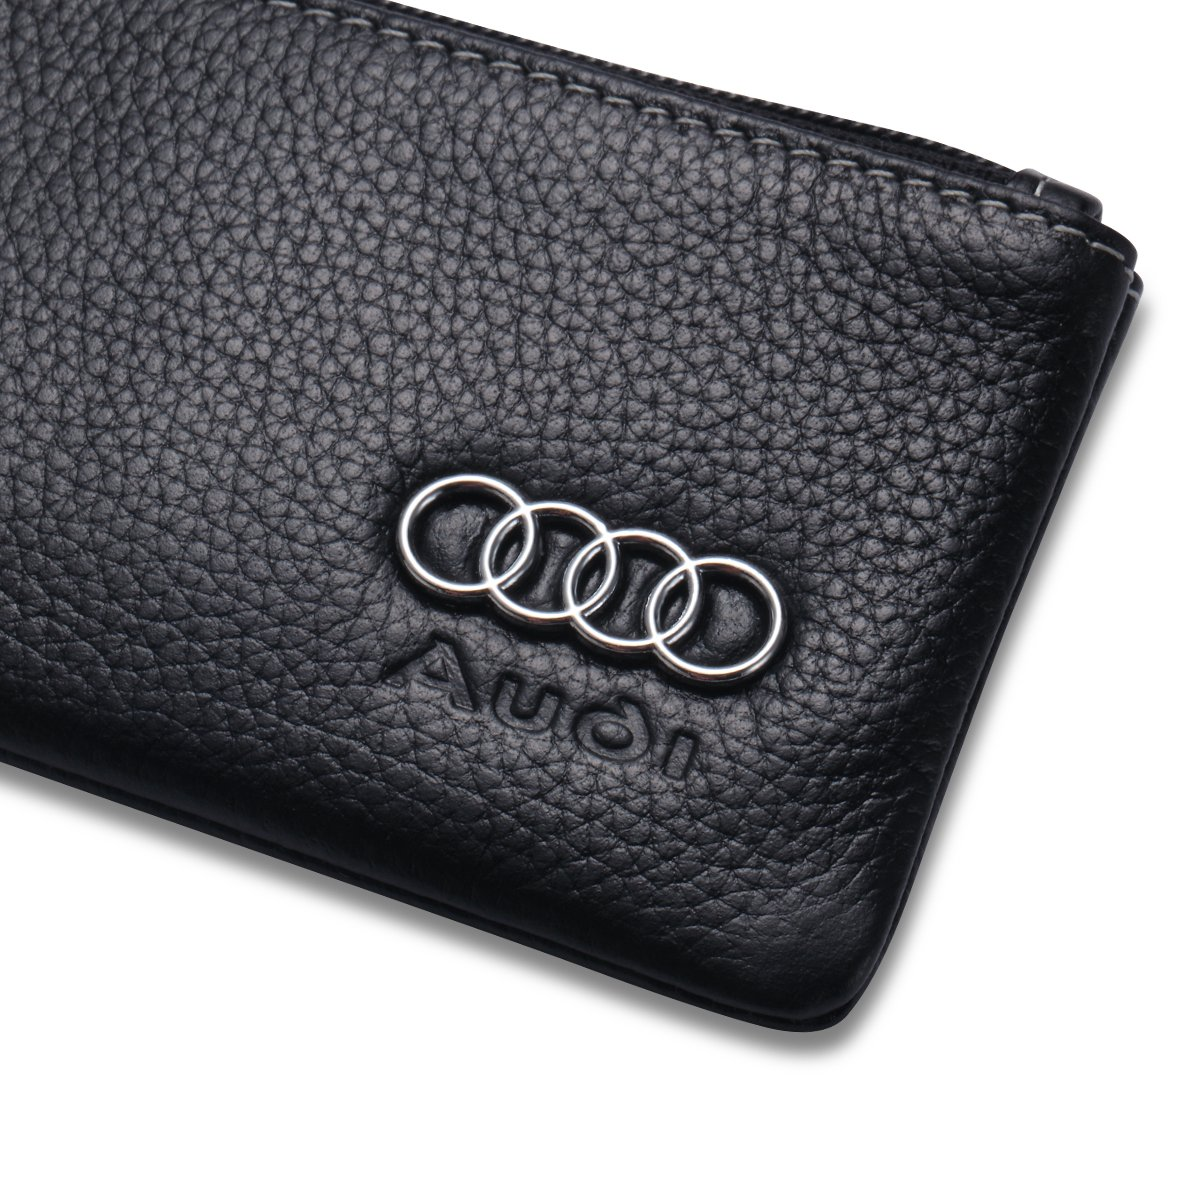 Audi Car Key Holder Remote Cover Fob with 1 Metal Keychain Genuine Leather